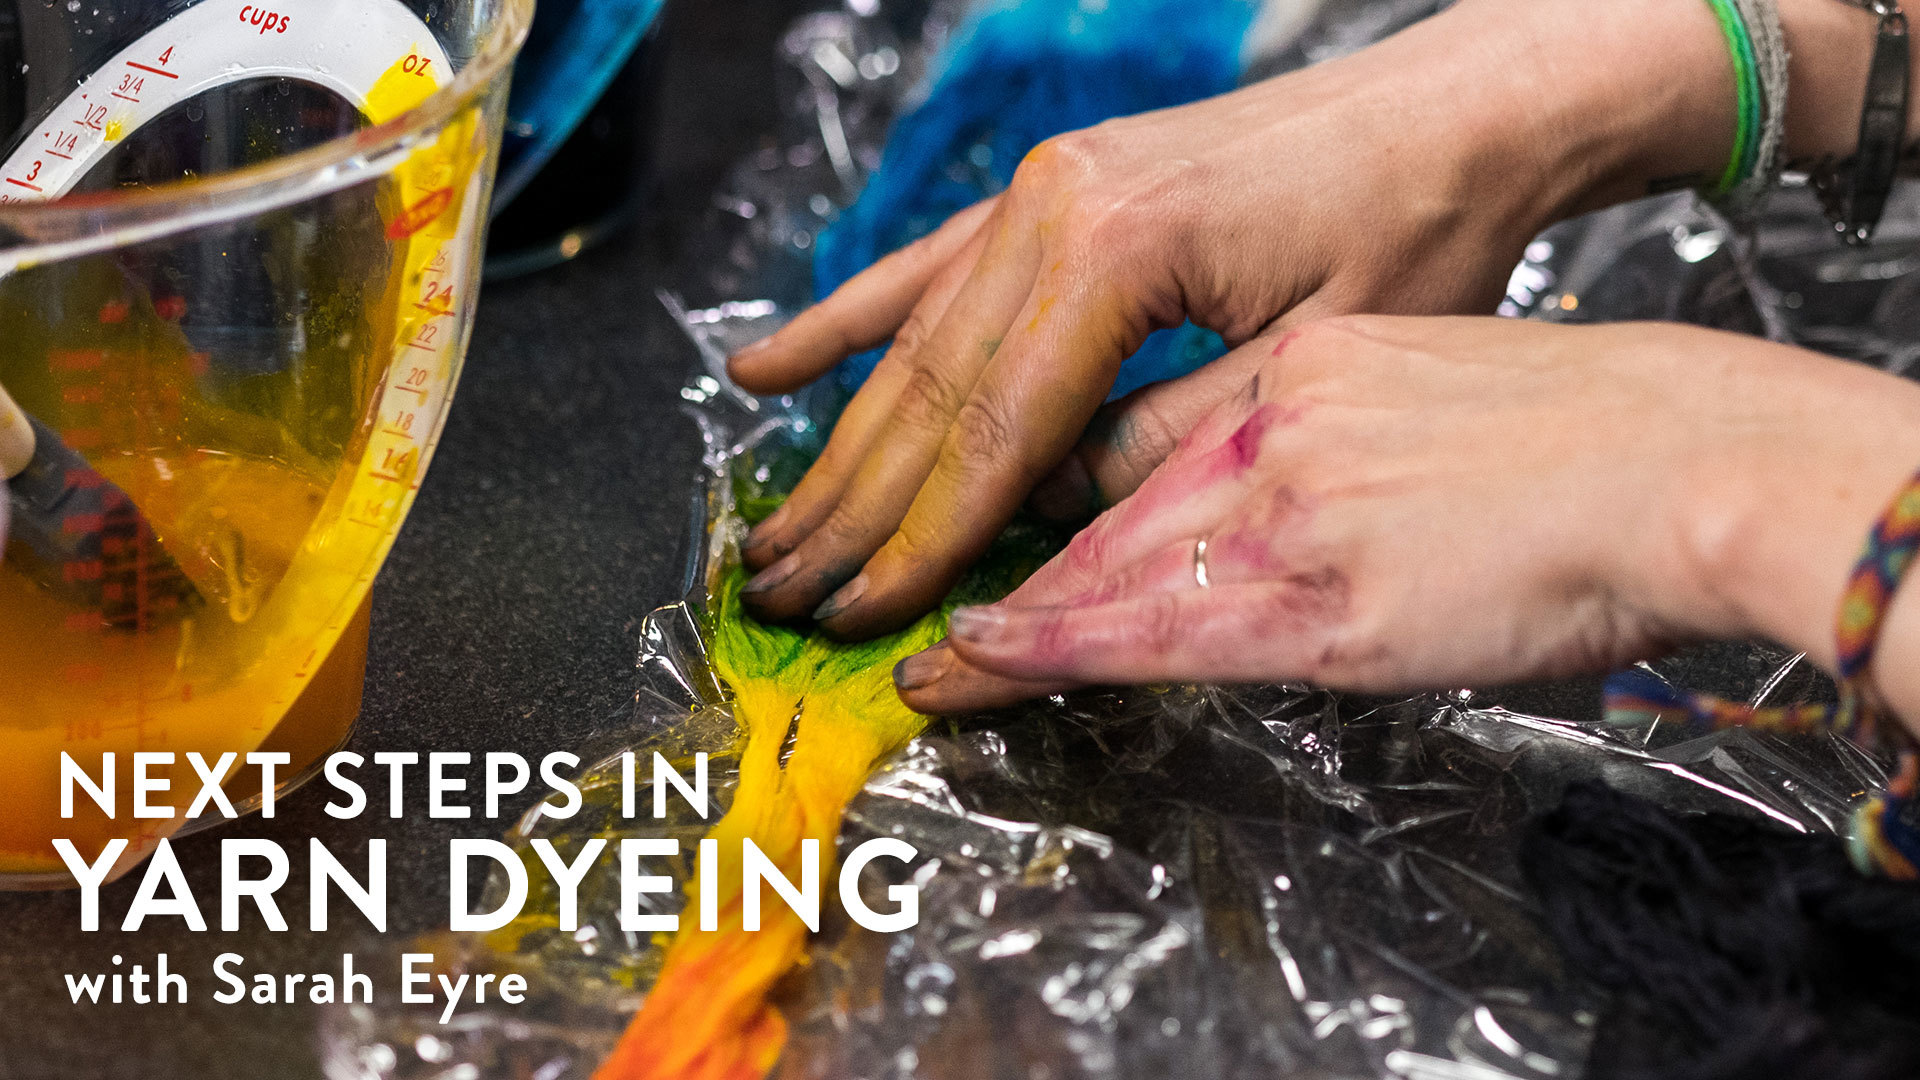 Next Steps in Yarn Dyeing